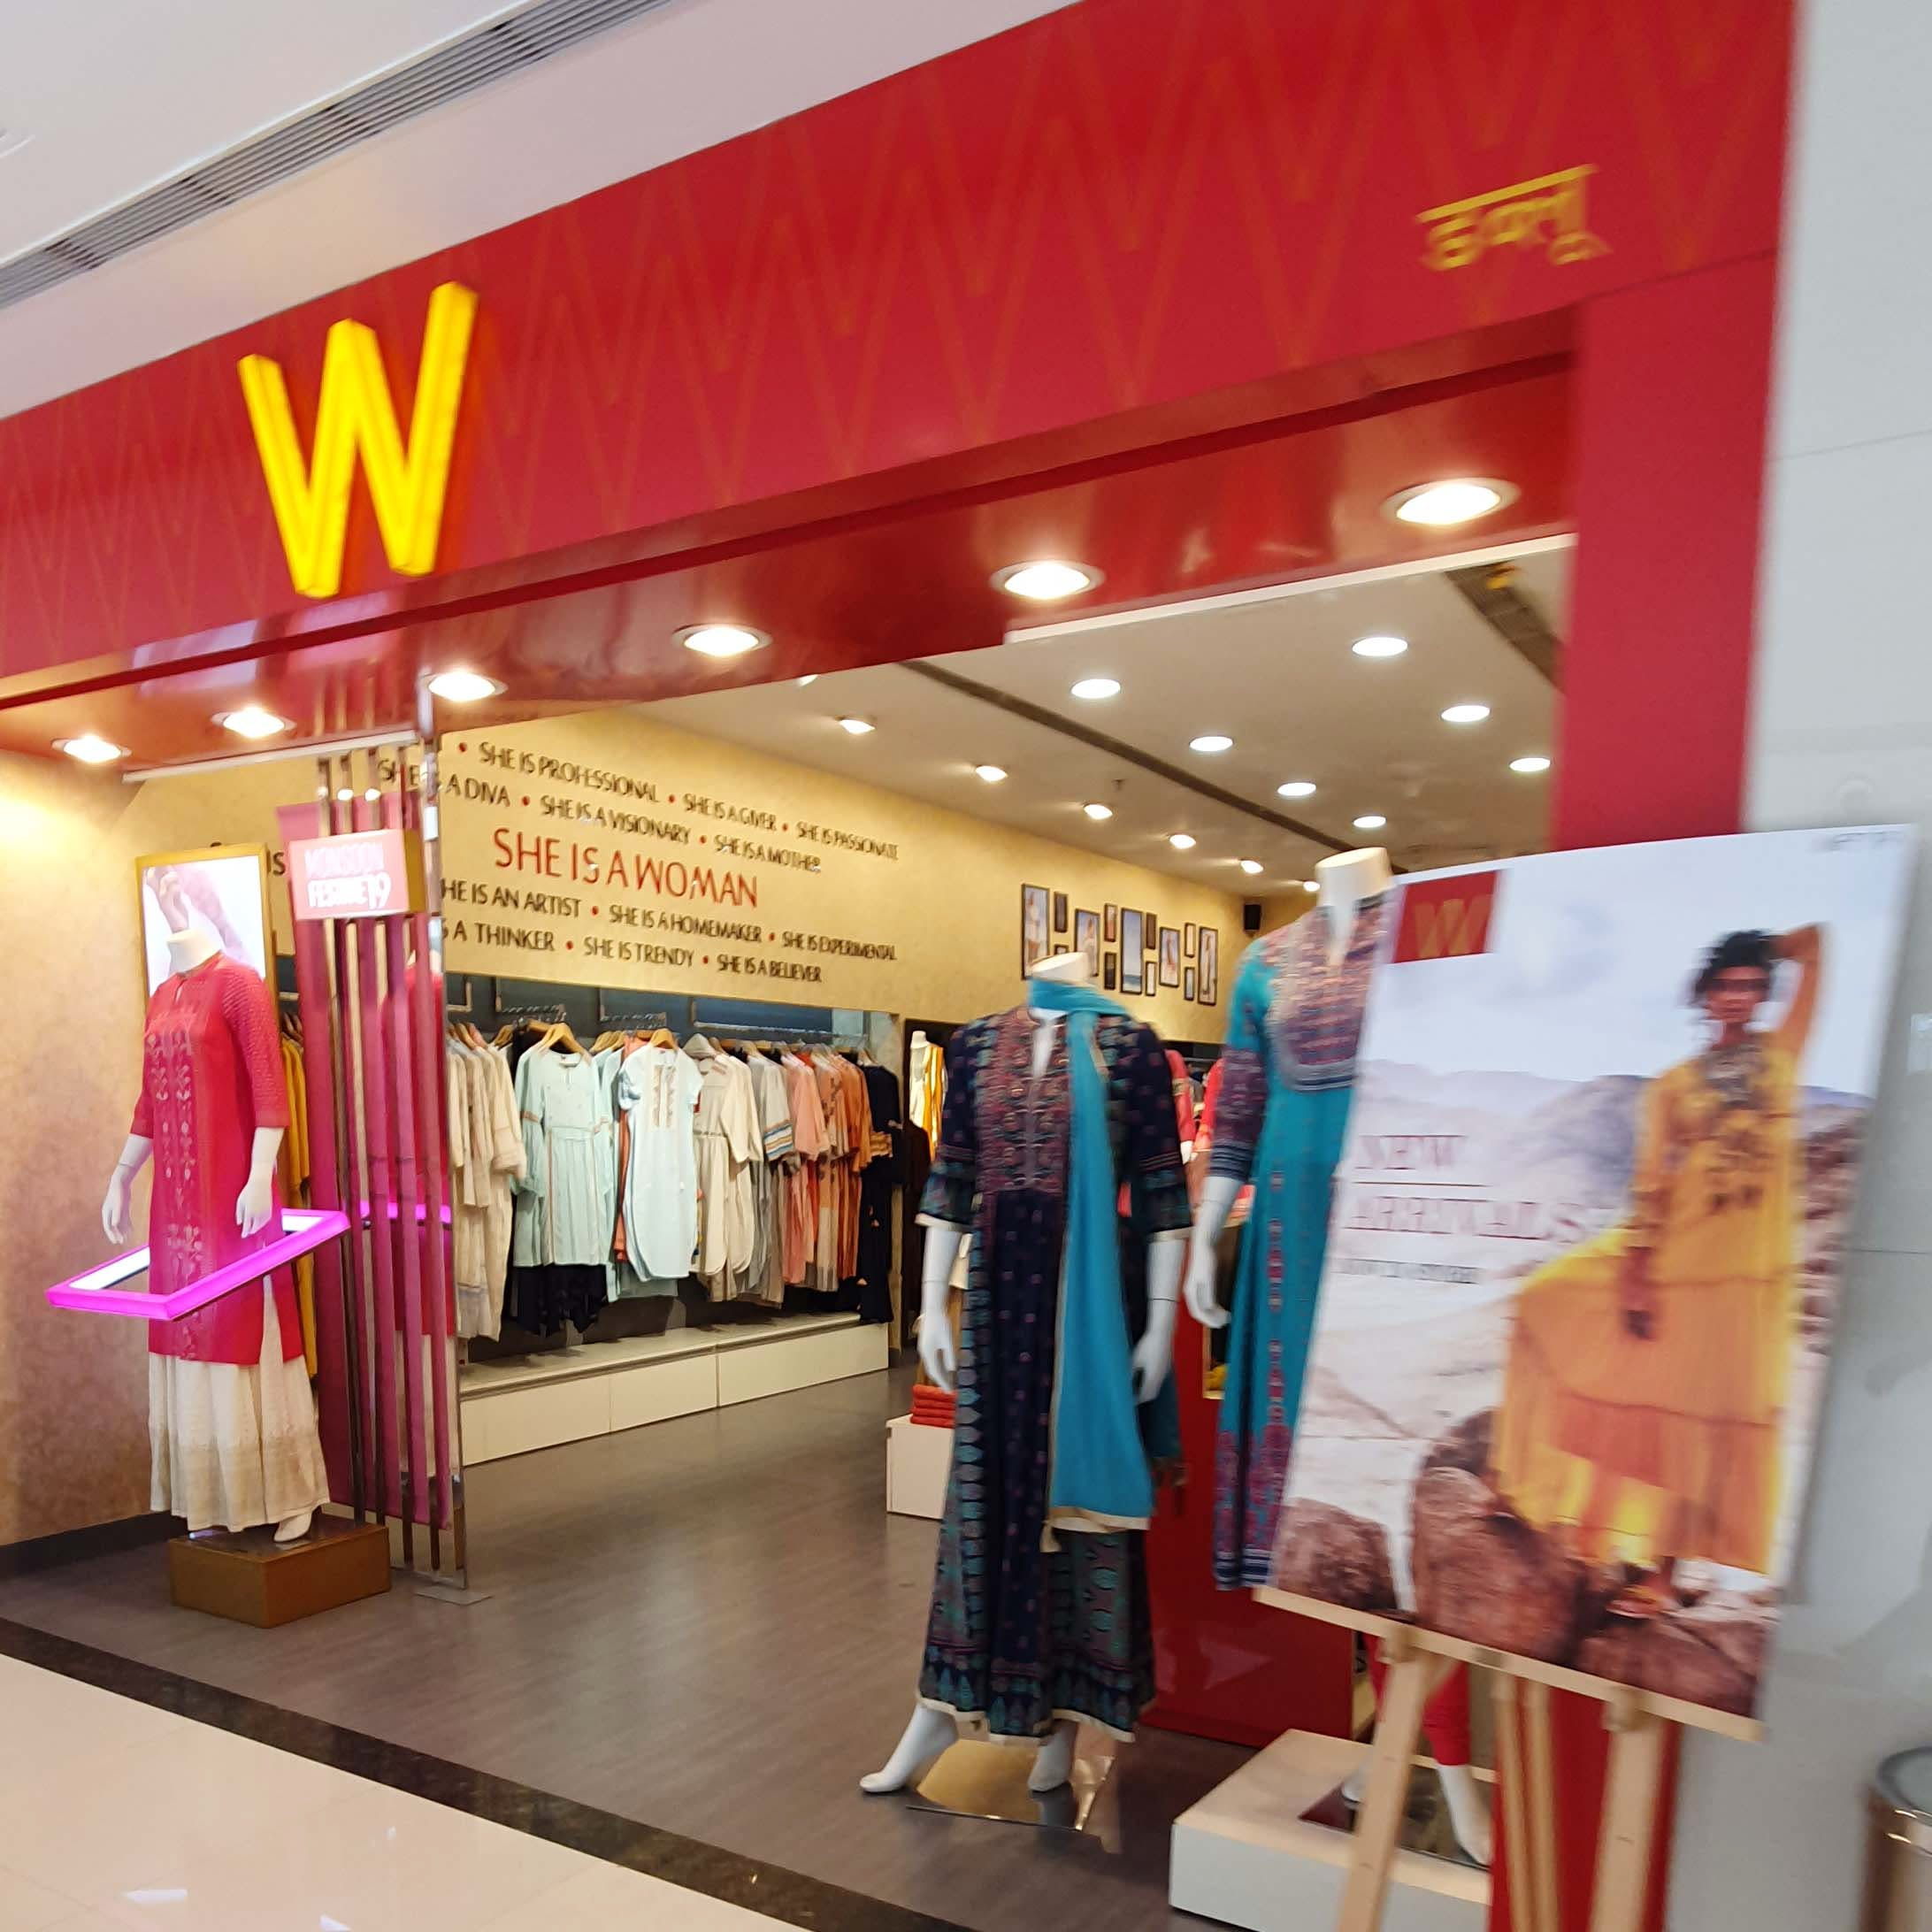 Boutique,Outlet store,Building,Shopping,Shopping mall,Retail,Event,Interior design,Ceiling